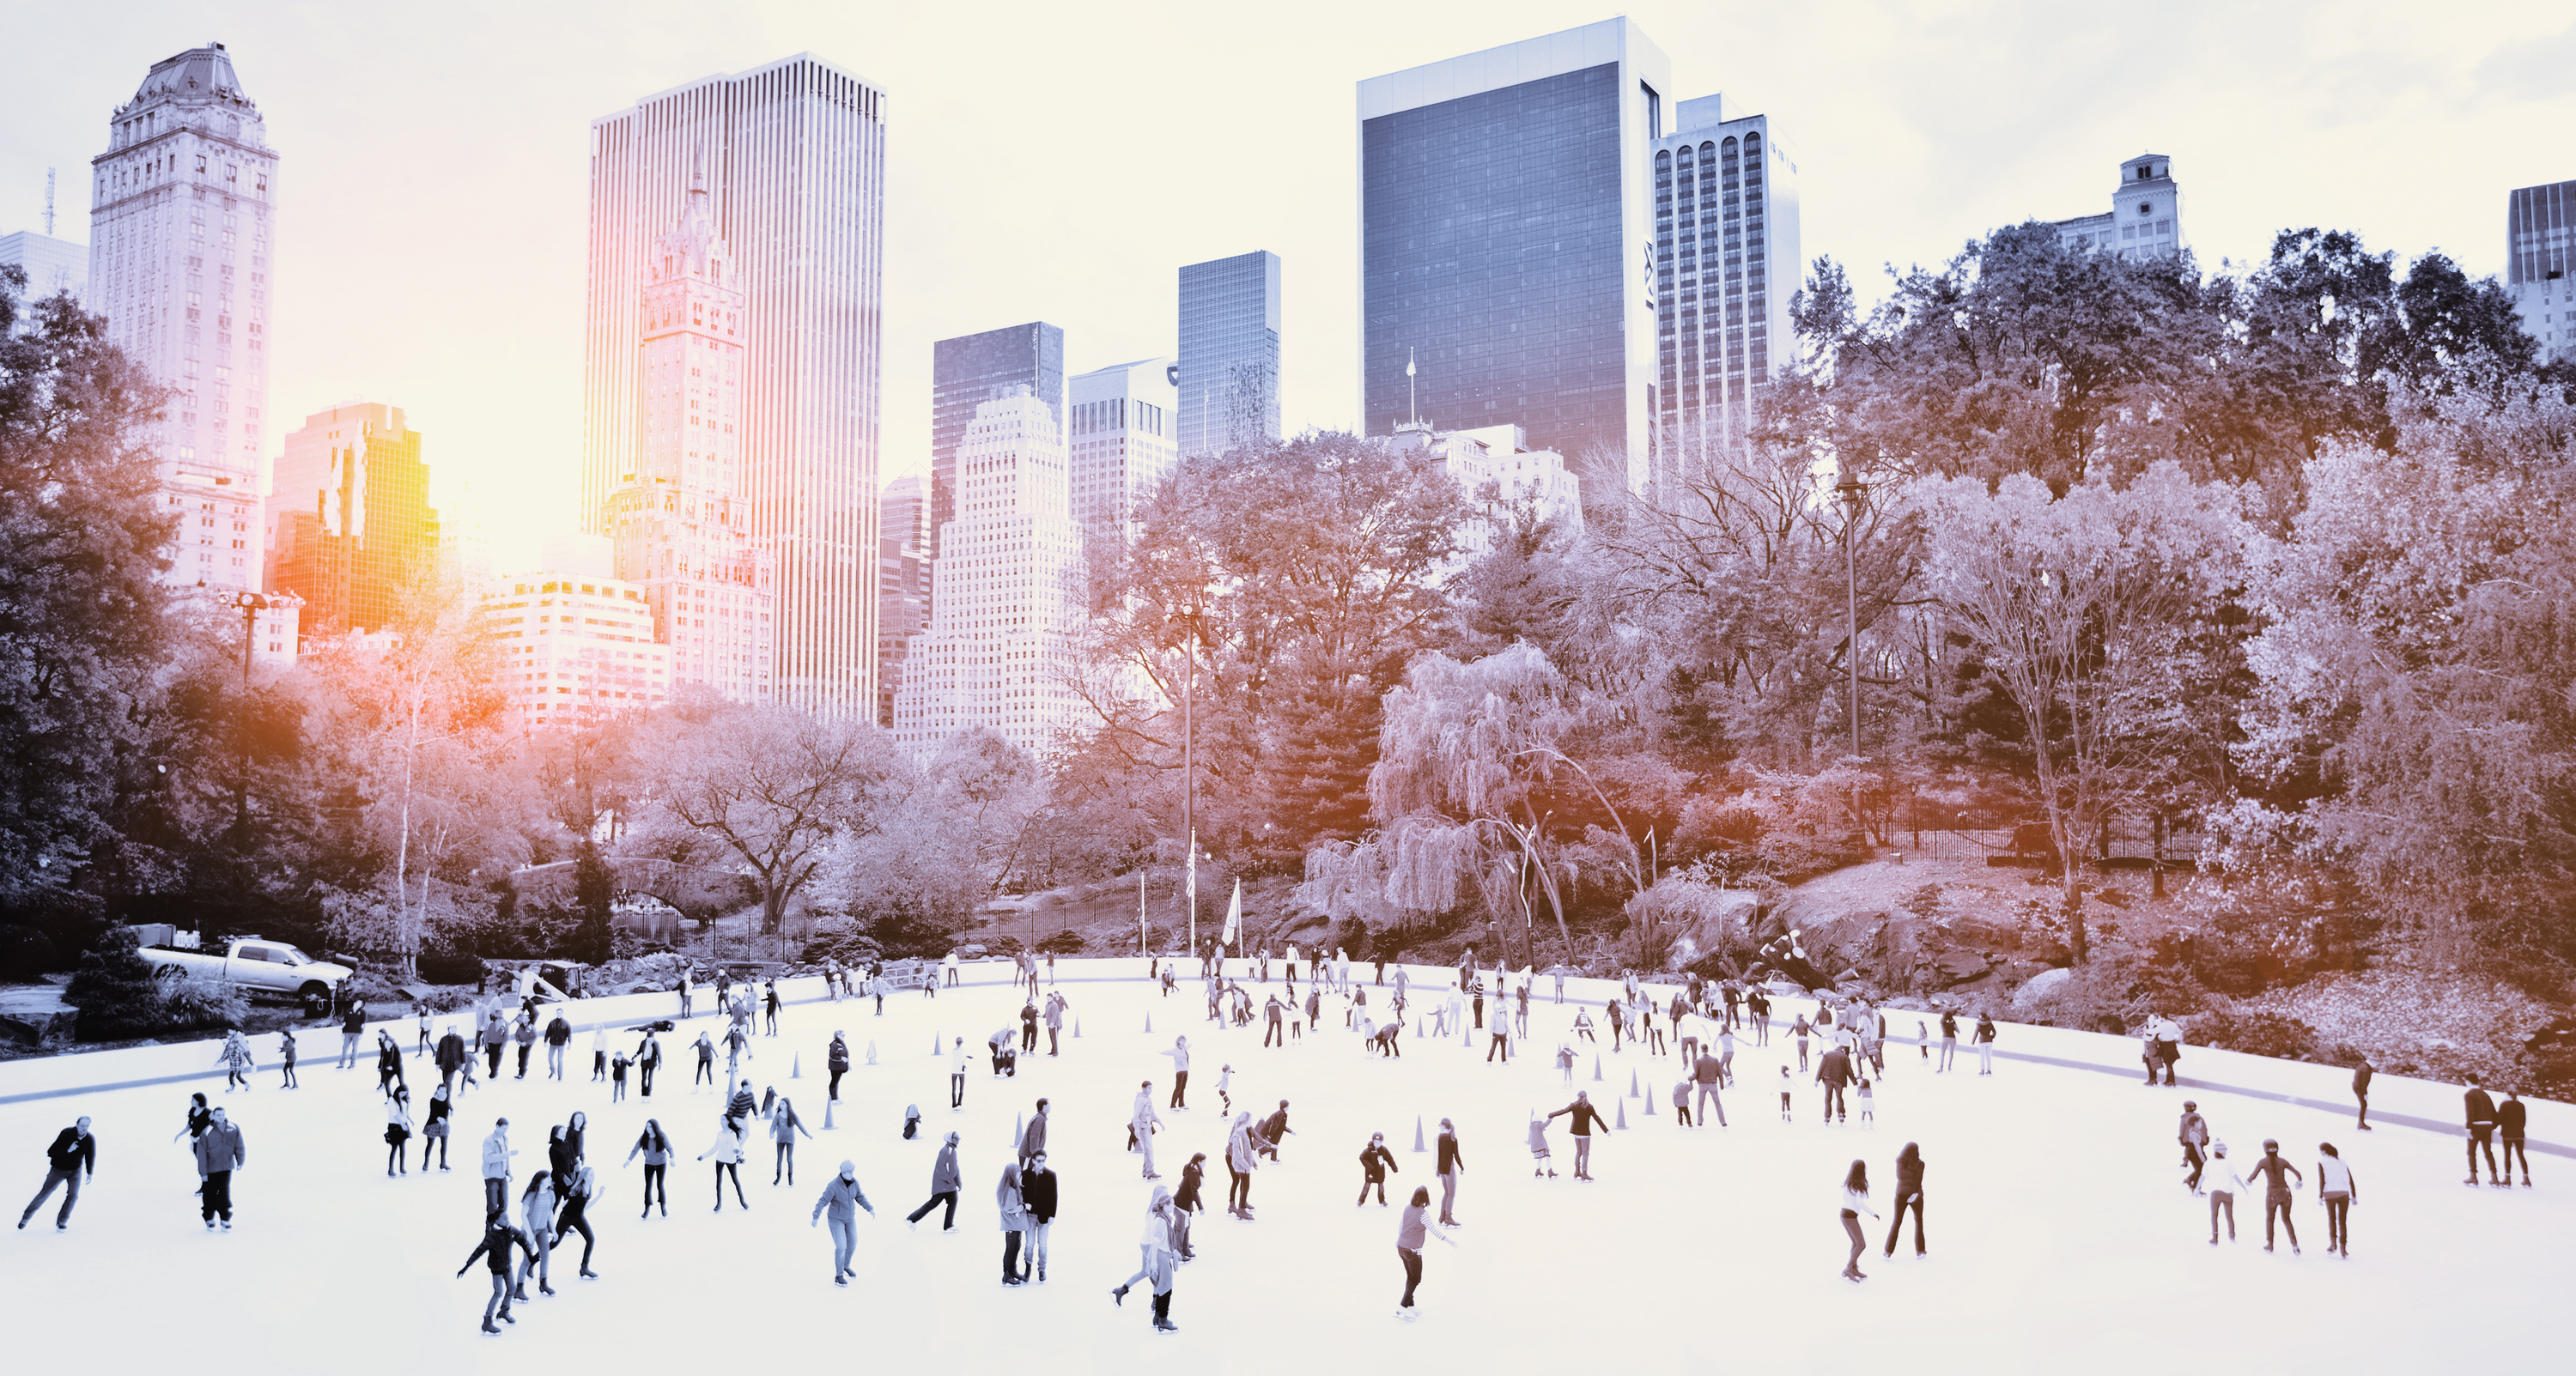 wollman rink central park